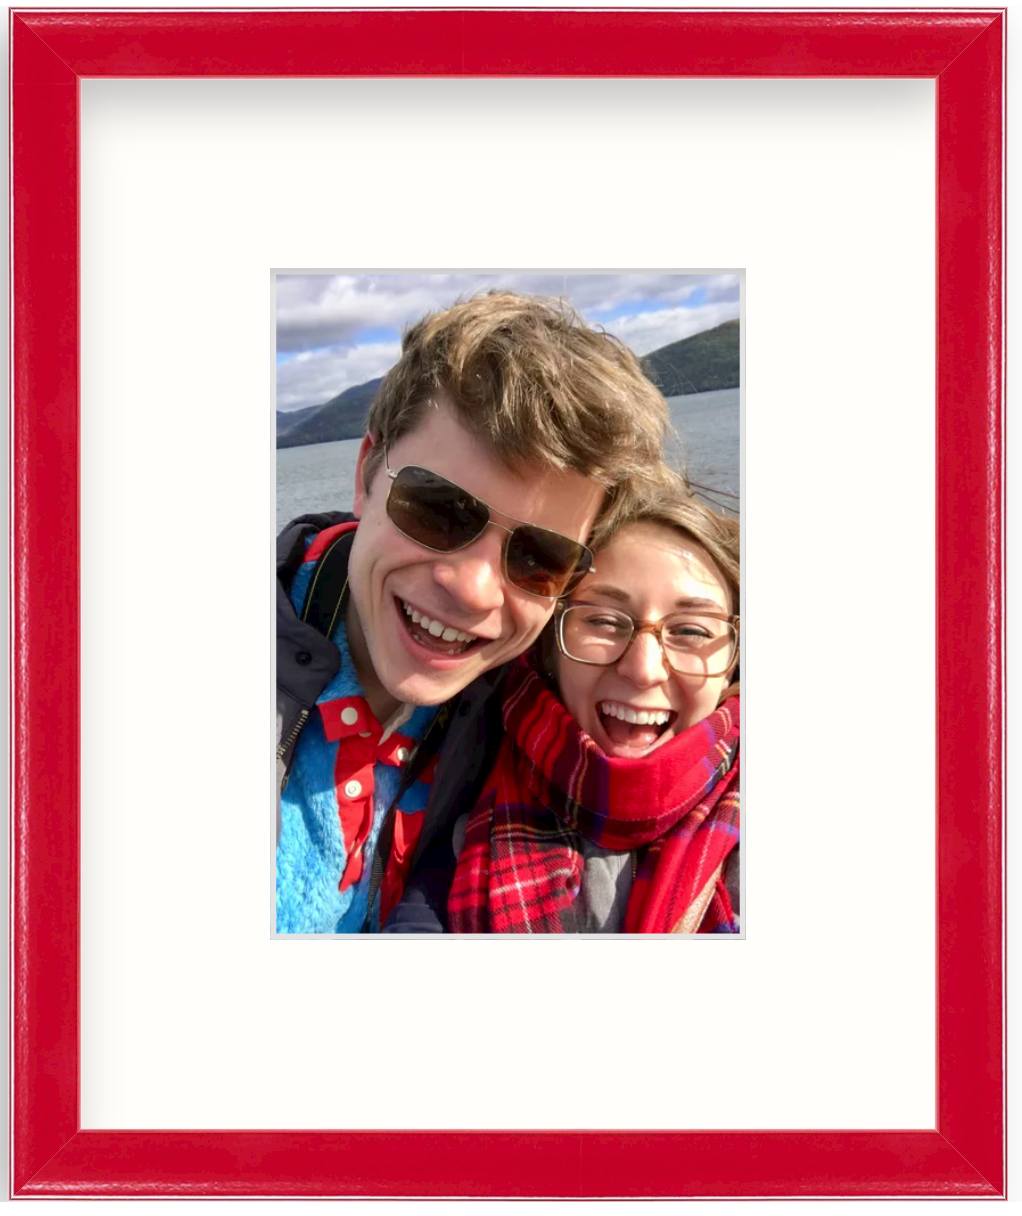 selfie photo of couple on lake in red frame